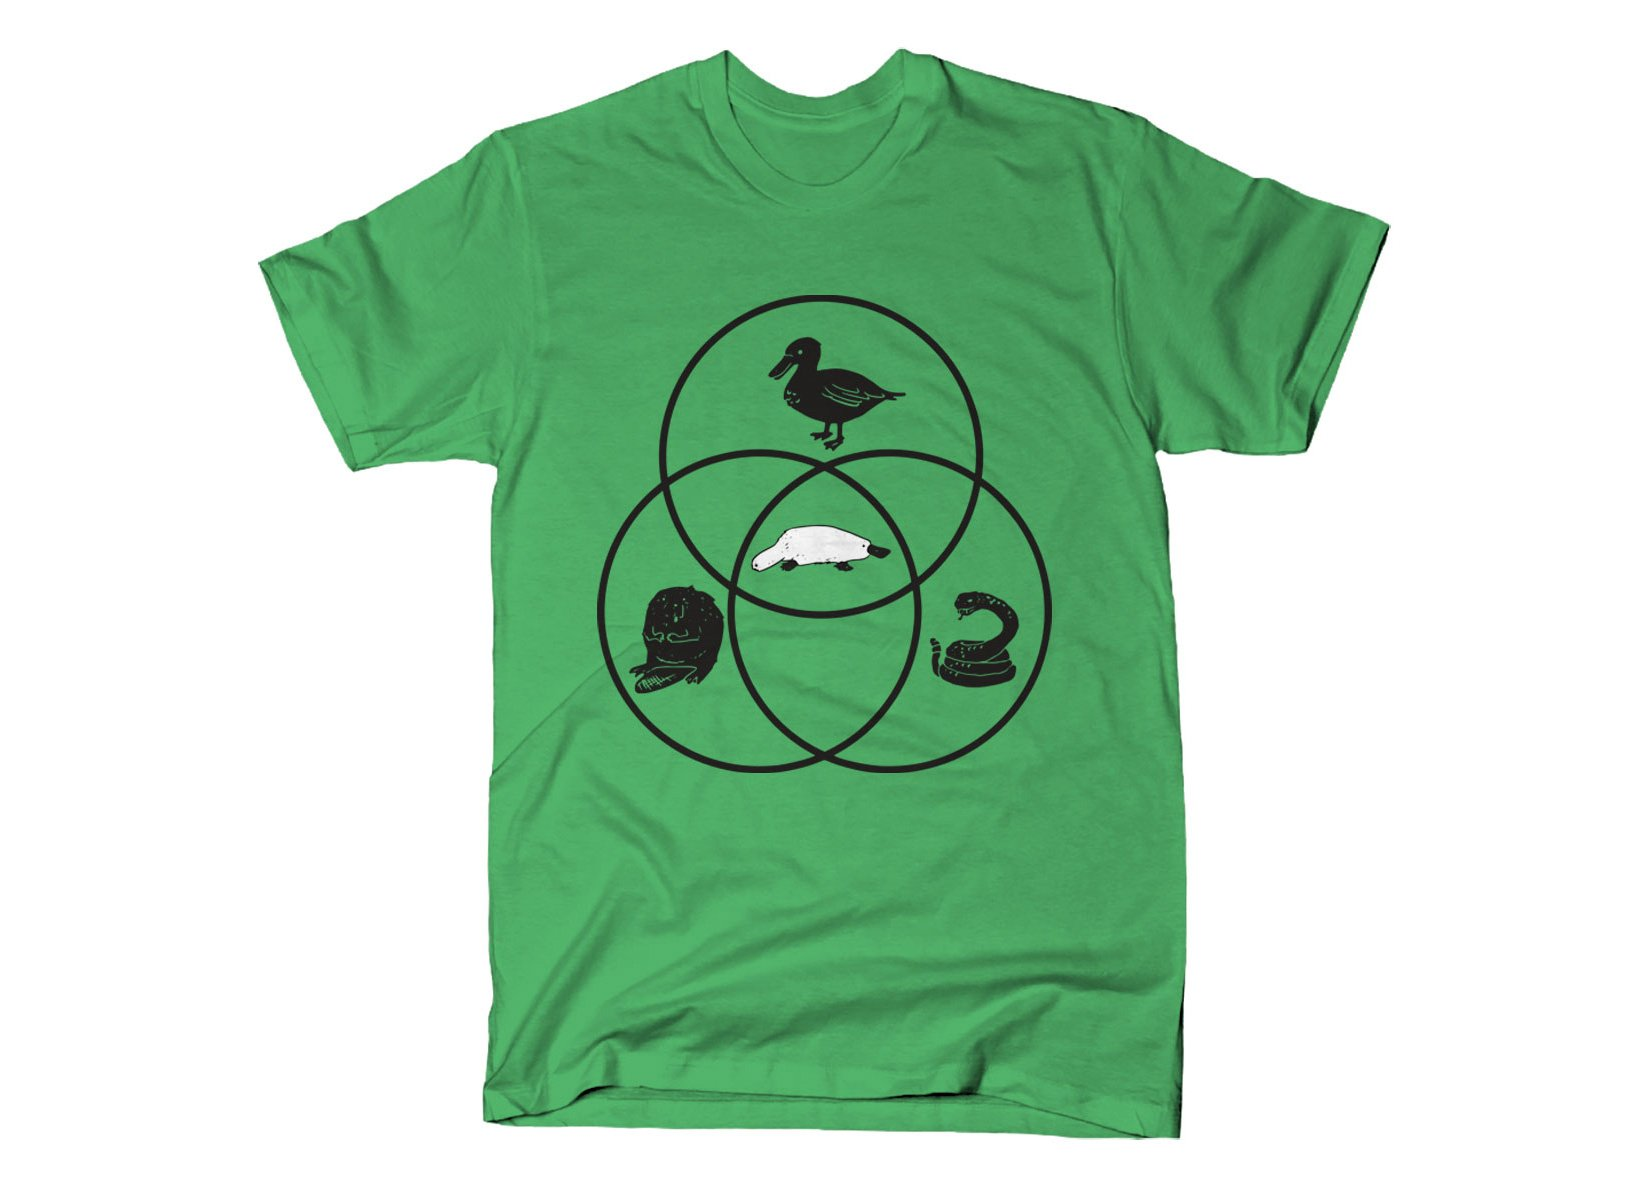 Platypus Venn Diagram on Mens T-Shirt